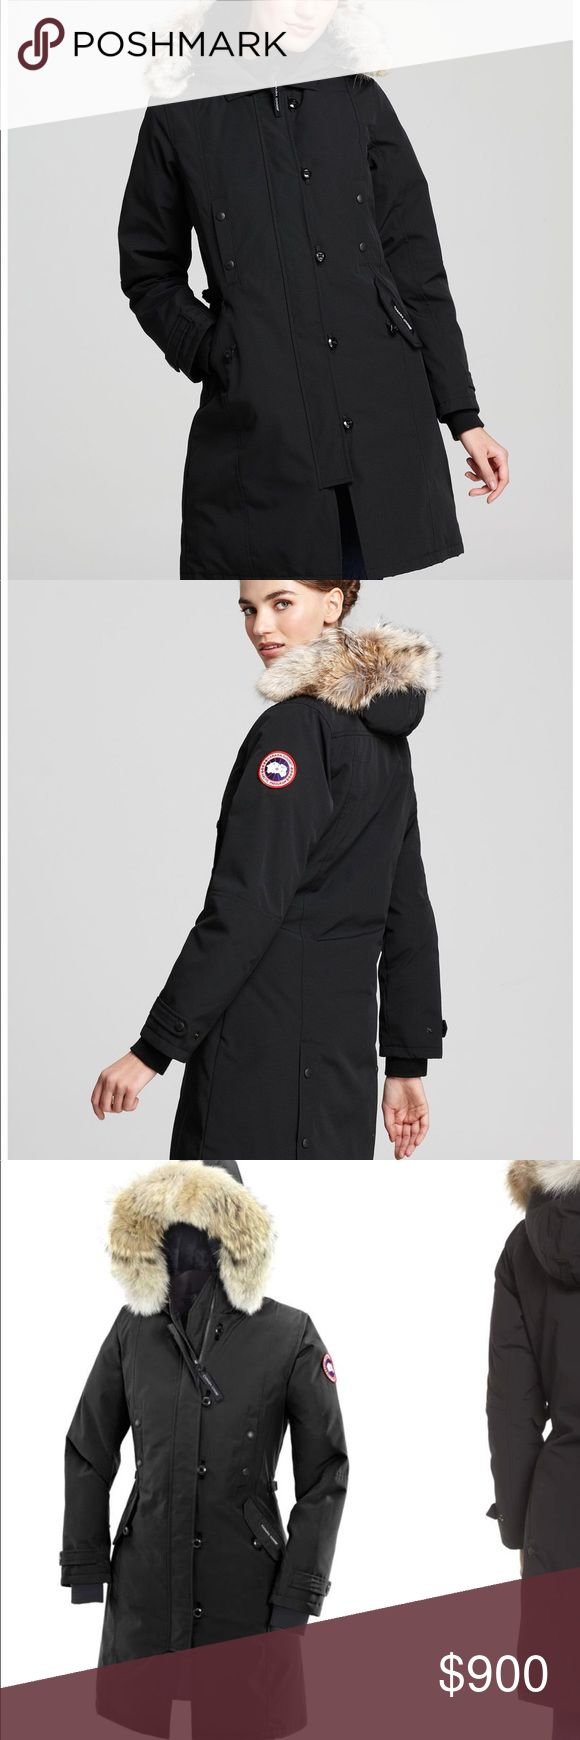 🖤Canada Goose Kensington Parka🖤 🖤Canada Goose Kensington Parka🖤 BRAND NEW! With tags!! Gorgeous Canada Goose Kensington Parka is black with tan Fox Fur. Most Sought after Canada Goose Coat for Women! SIZE: Large. Best for room! 3/4 length to cover up to mid thigh. Will come with tags on as pictures and saks garment bag to keep it stored. Canada Goose Jackets & Coats Puffers